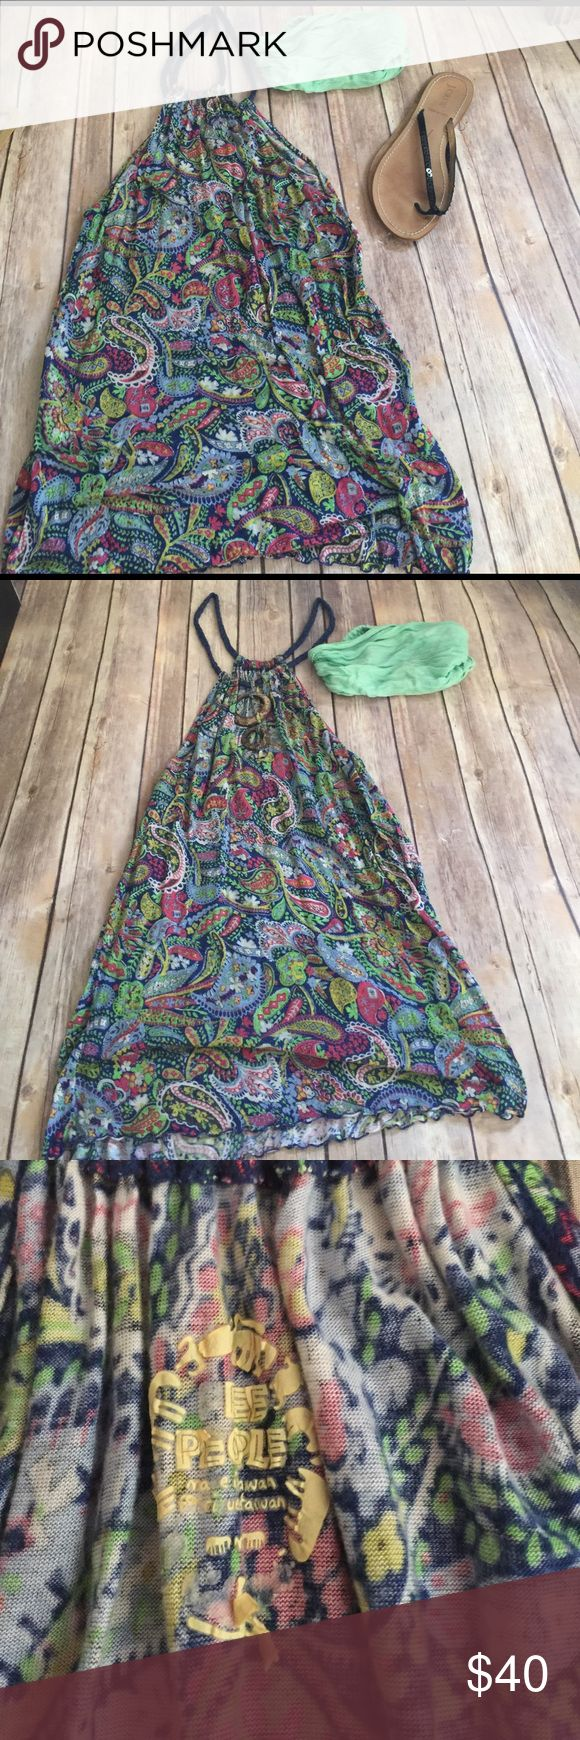 Free People Vintage Tunic Vintage FP ROPE HALTER NECKLINE WIRH WOODEN CIRCLED PIECES EMBELLISHED BACK - wear as a tunic top or overall fun piece - headband pictured is FP TOO Free People Dresses Mini